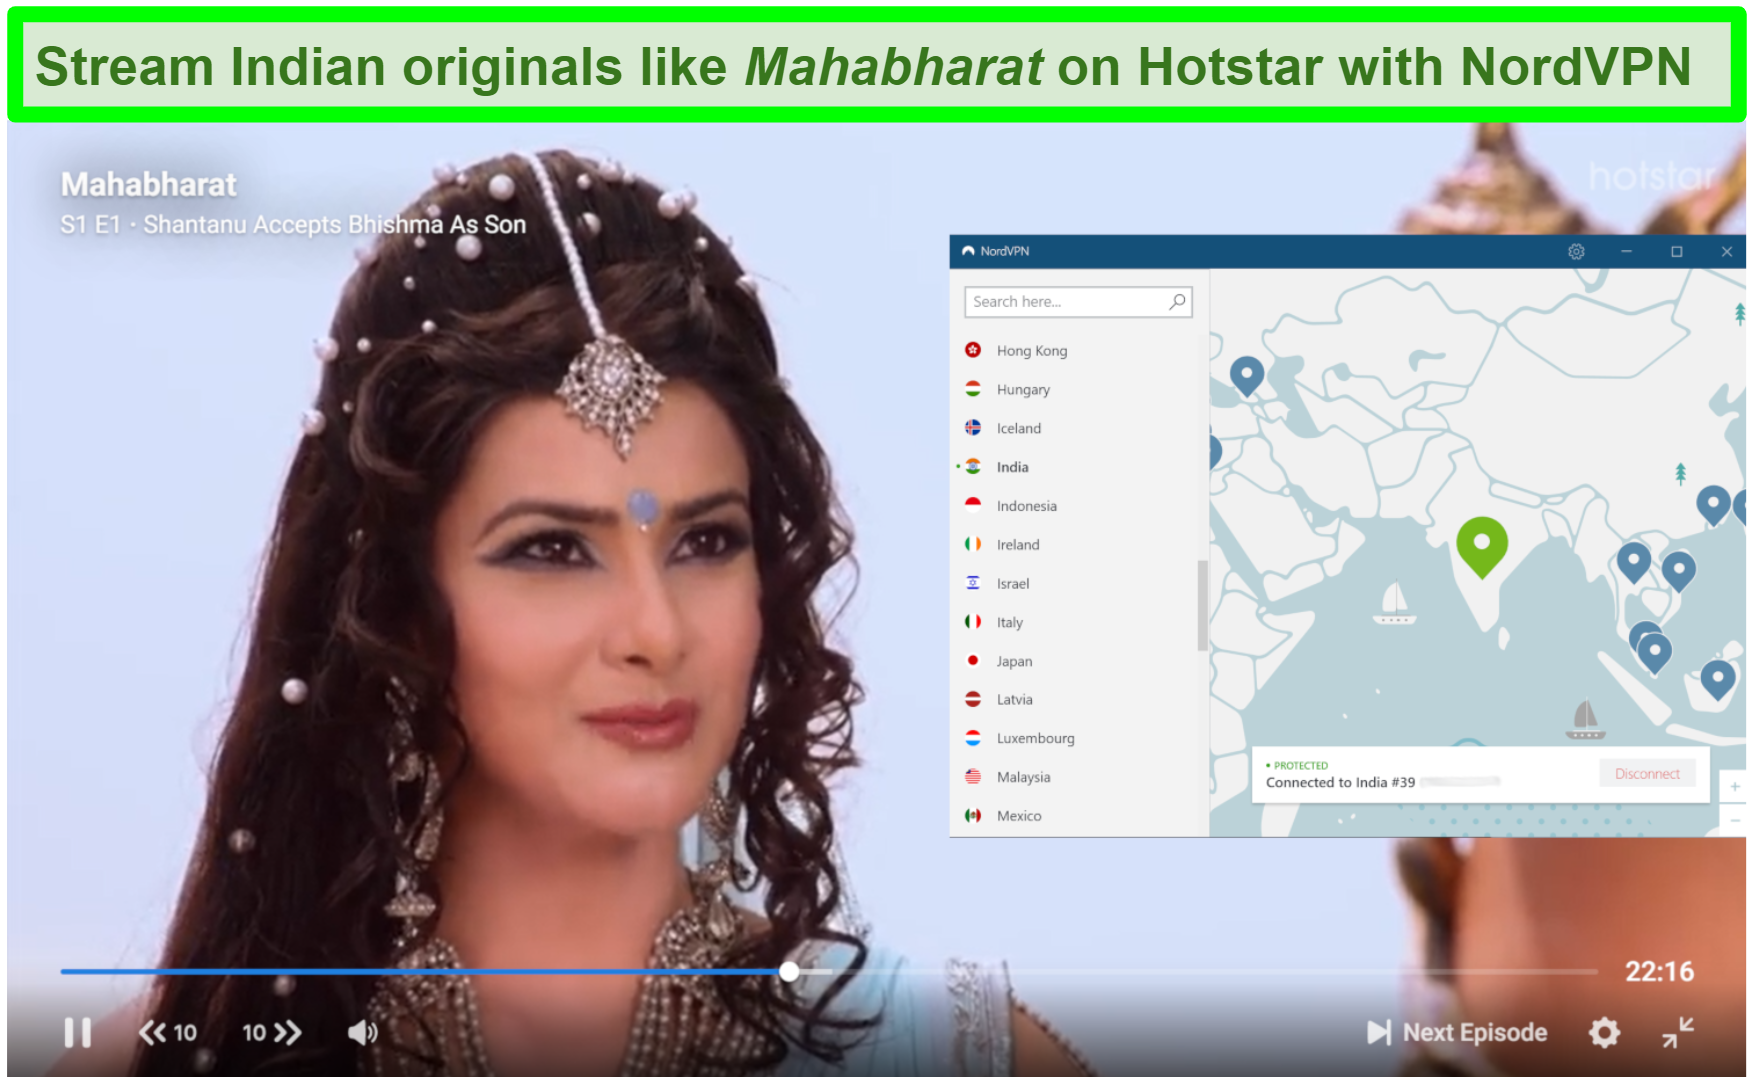 Screenshot of Mahabrarat on Hotstar playing with NordVPN connected